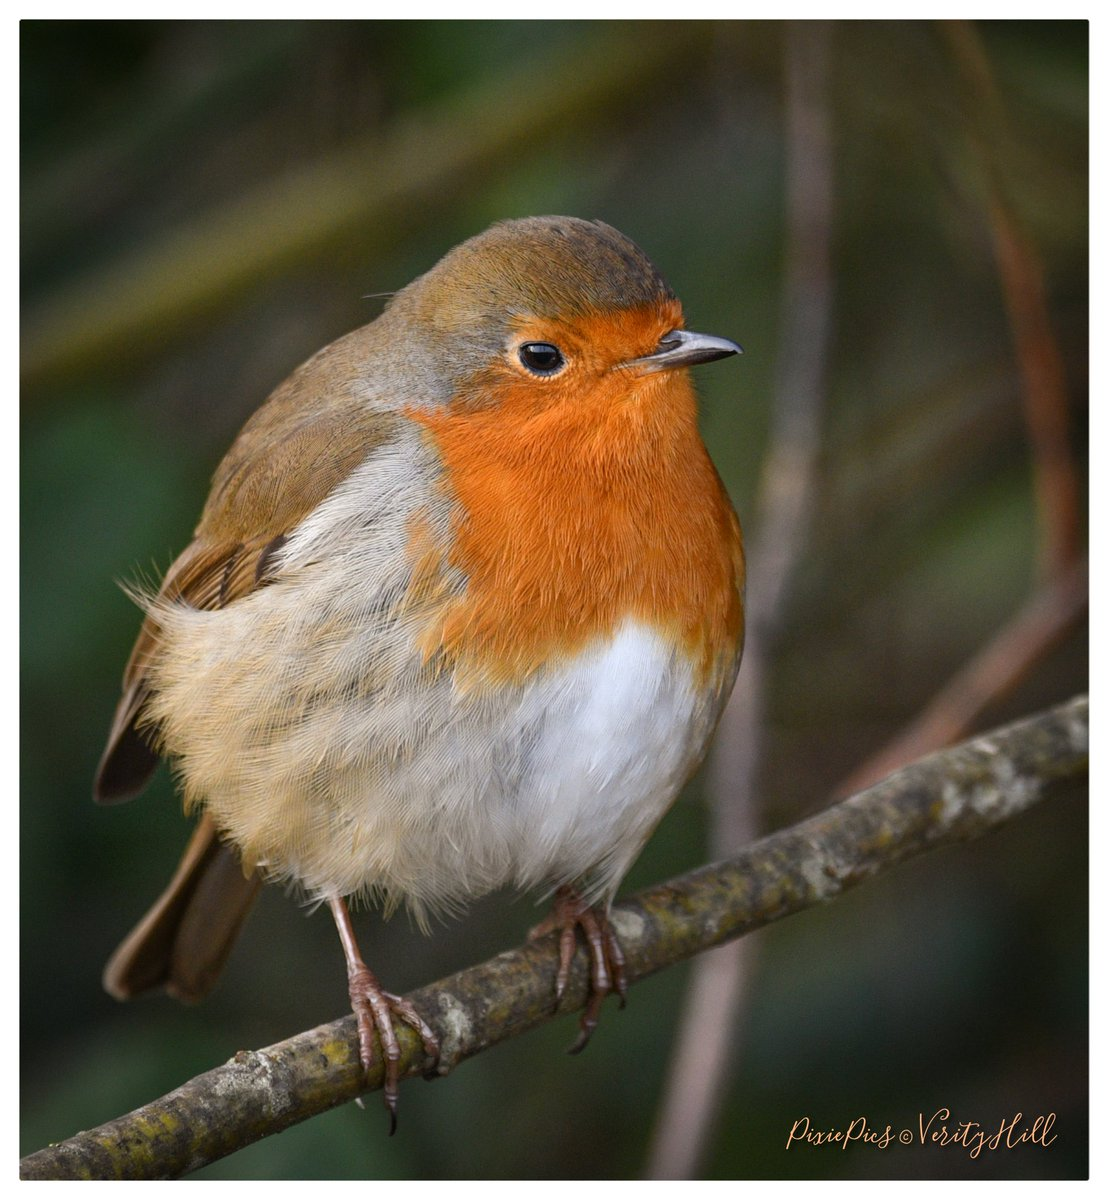 Beautiful Robin - They always brighten the day 🧡🌿😊🐦 #robin #erithacusrubecula #birds #birdlover #birdphotography #birdwatching #bbcWildlifePOTD #bbccountryfilemagpotd